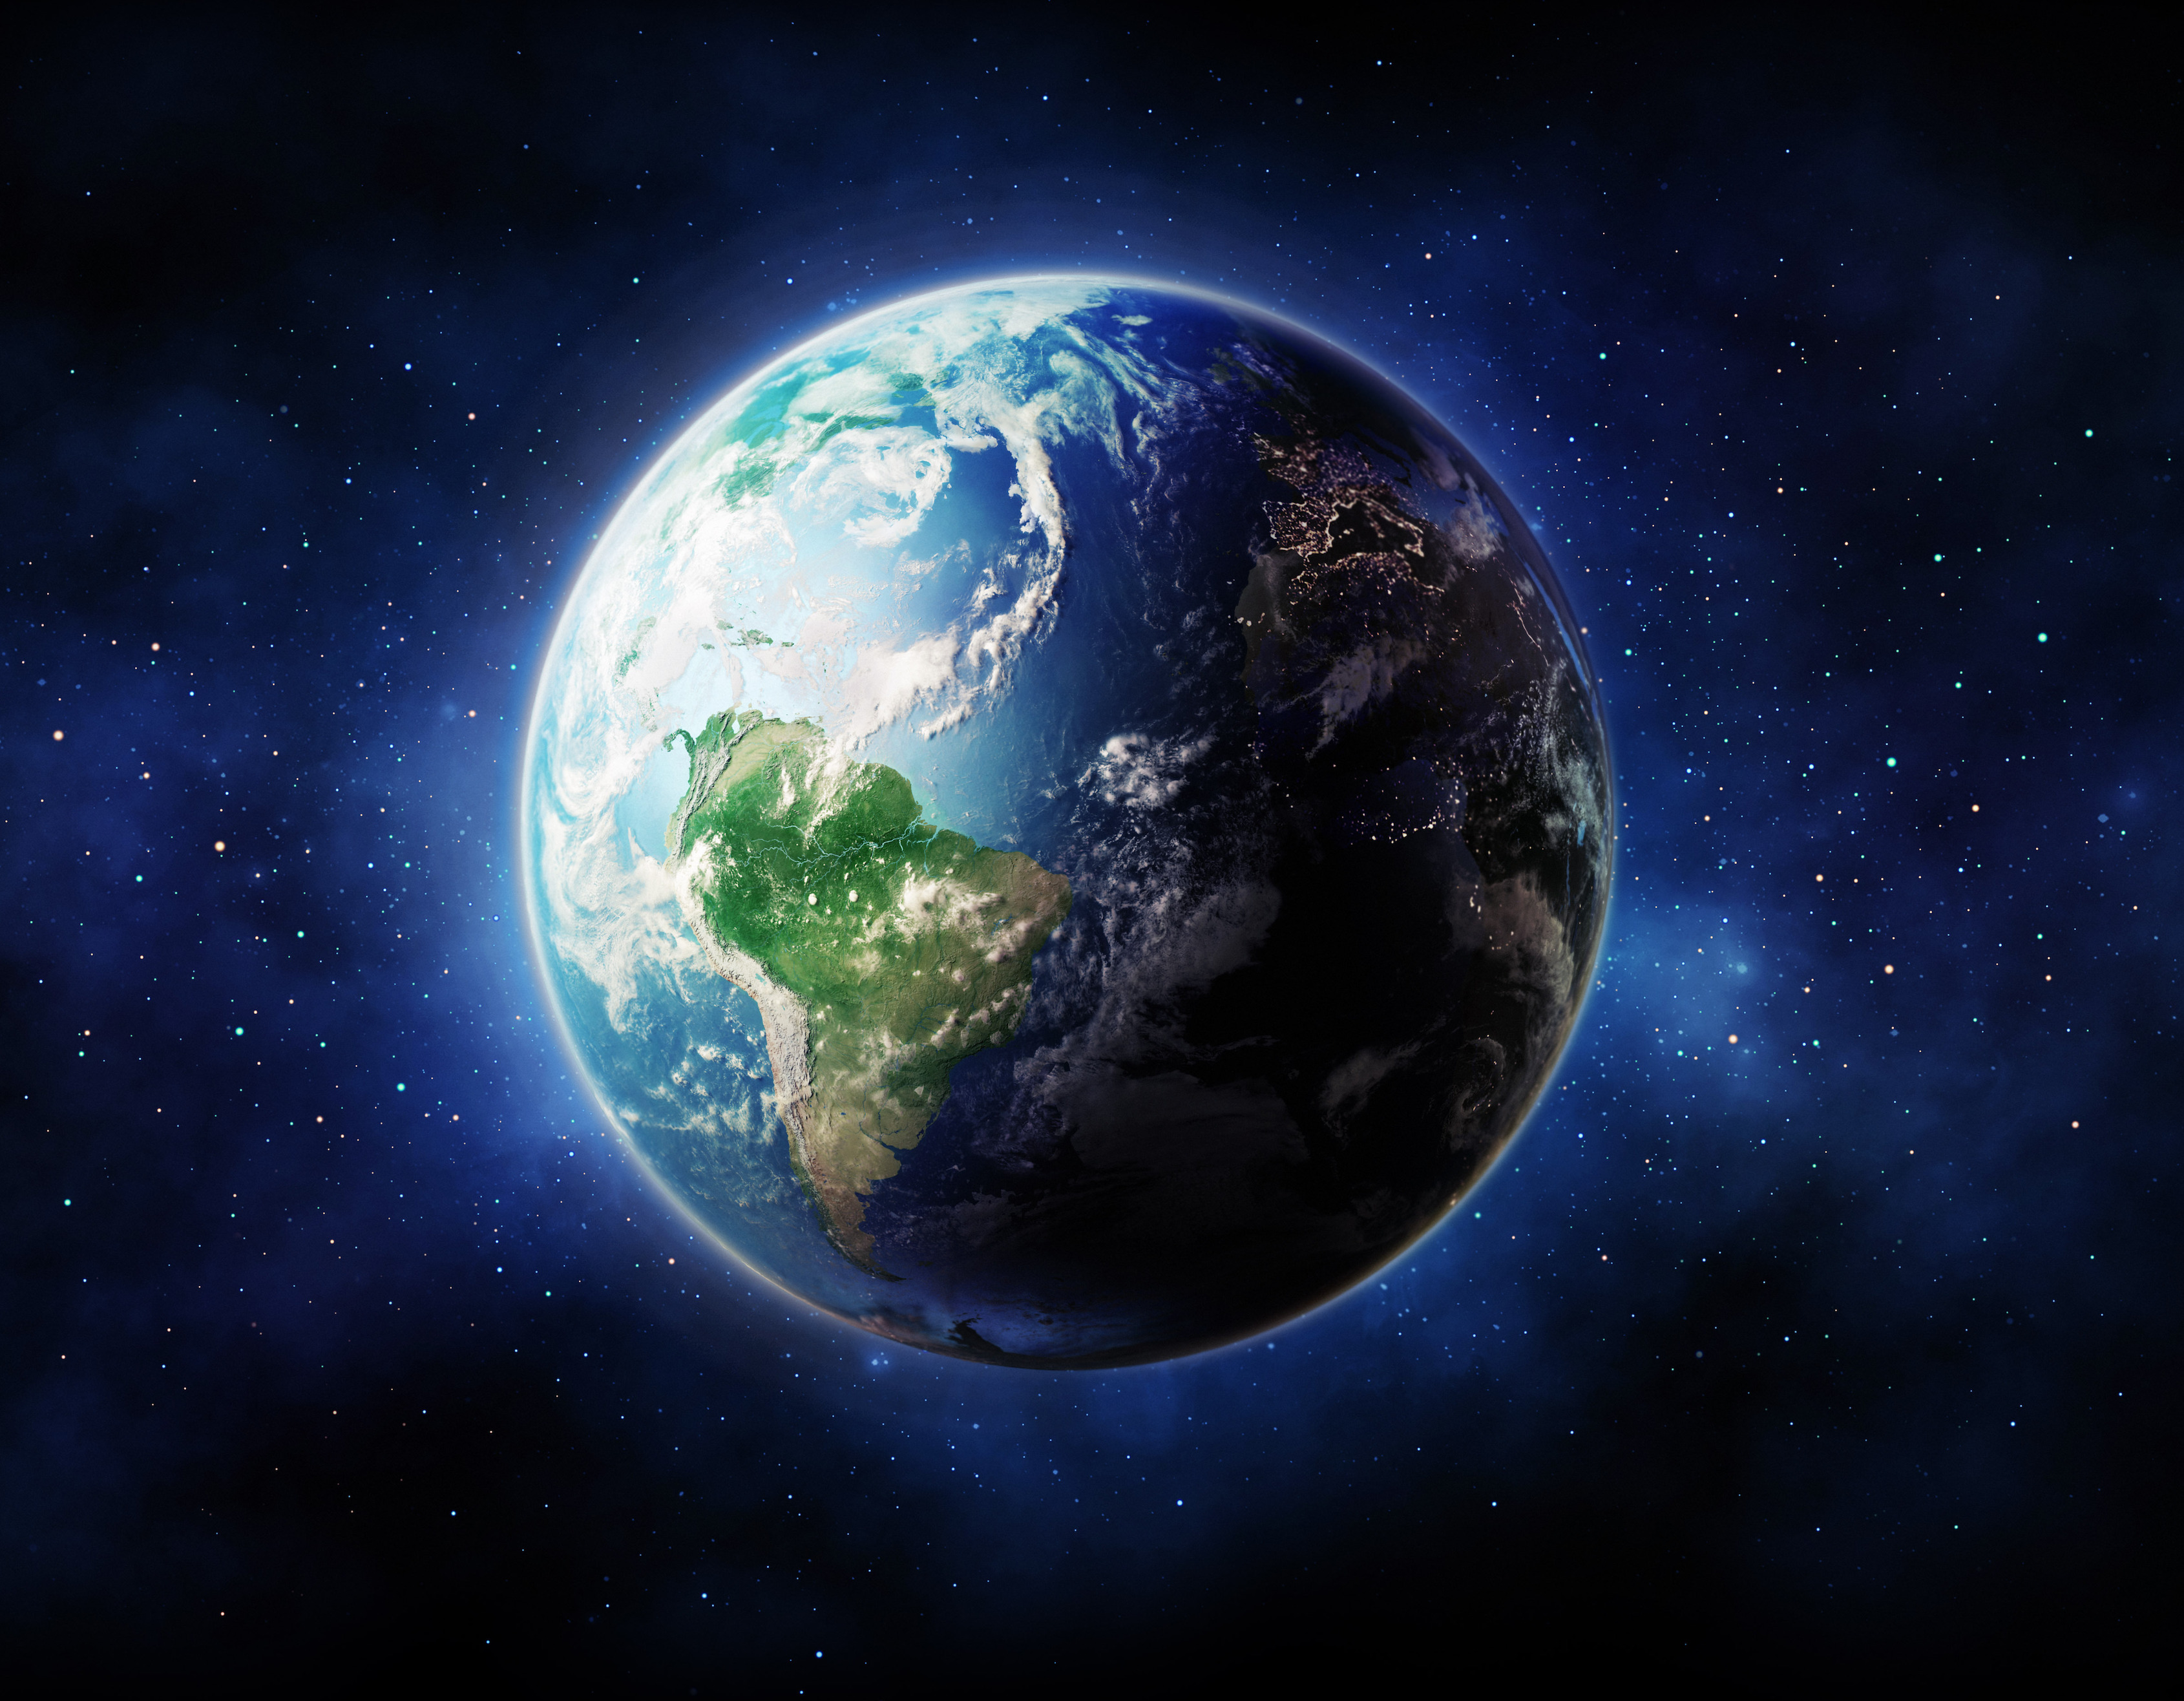 Age of Man: Scientists officially recognize the Anthropocene era • Earth.com